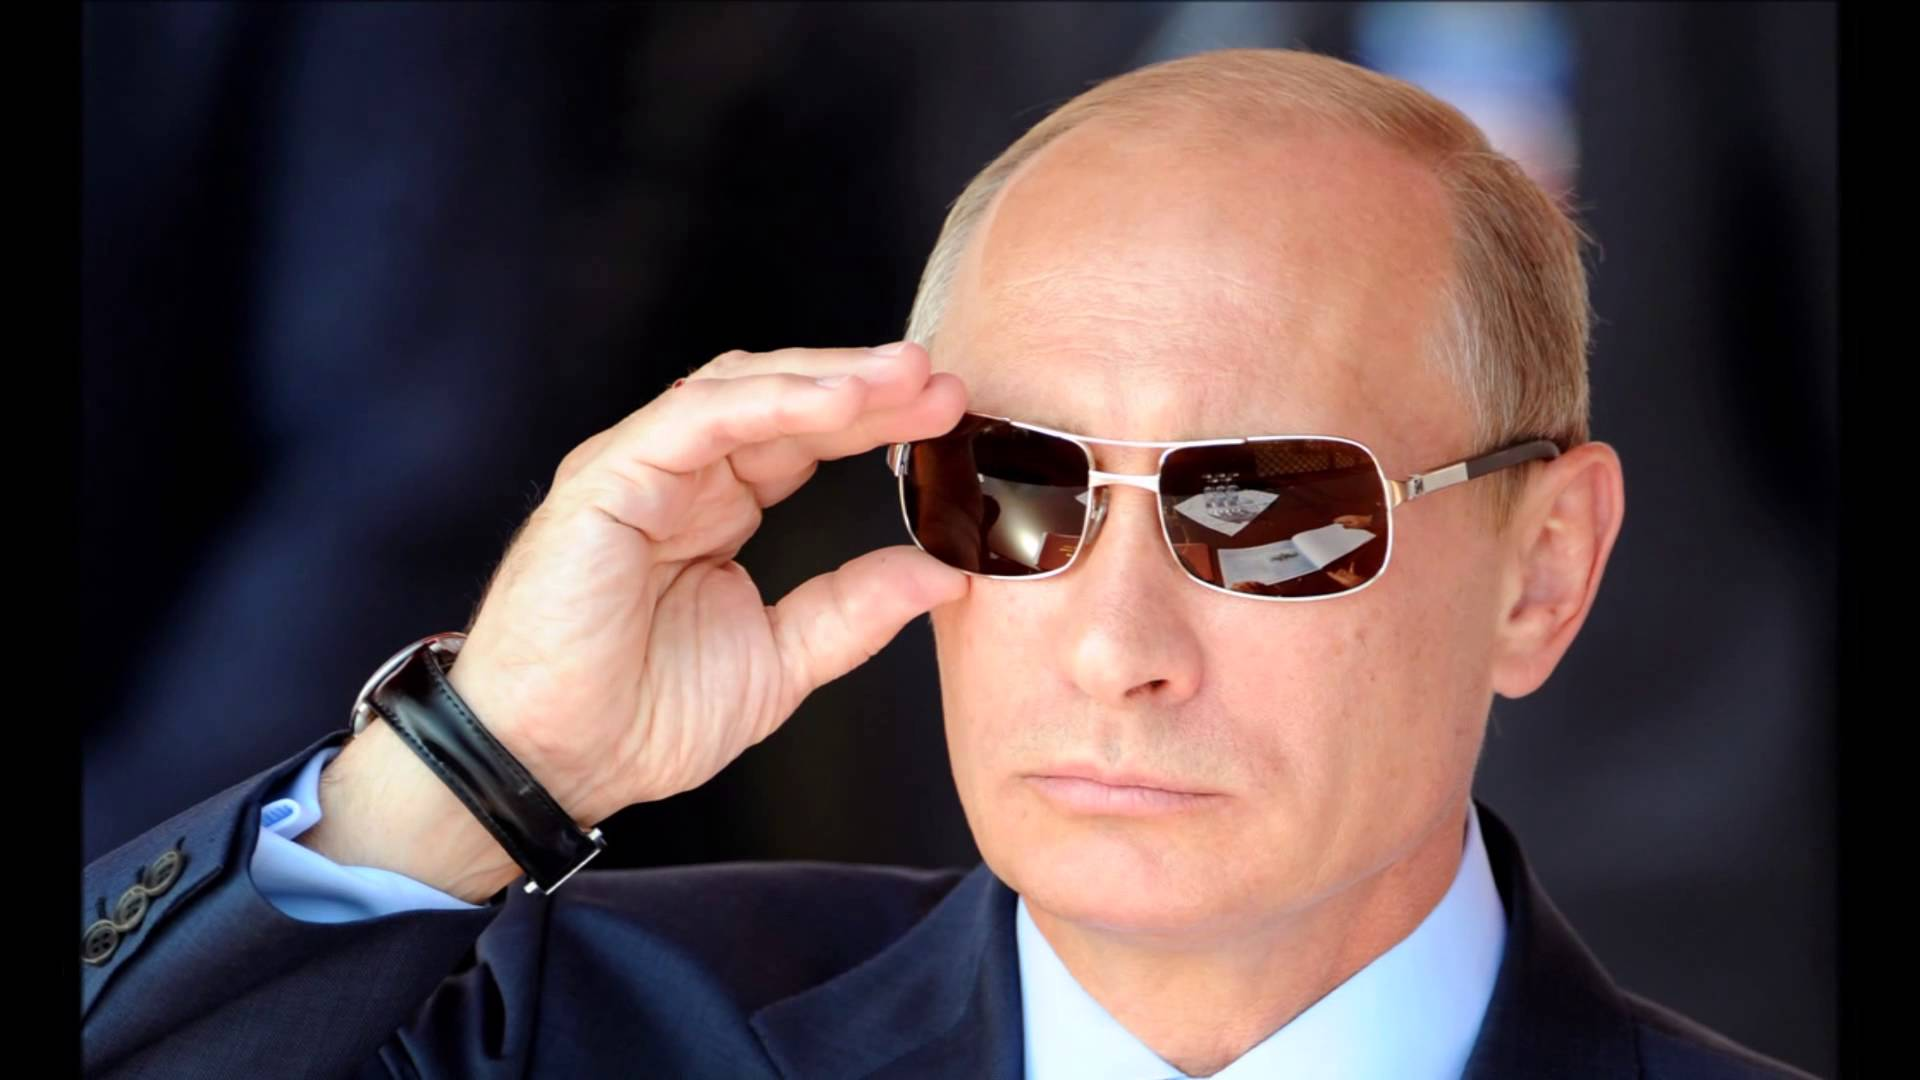 What is Putin's grand vision?